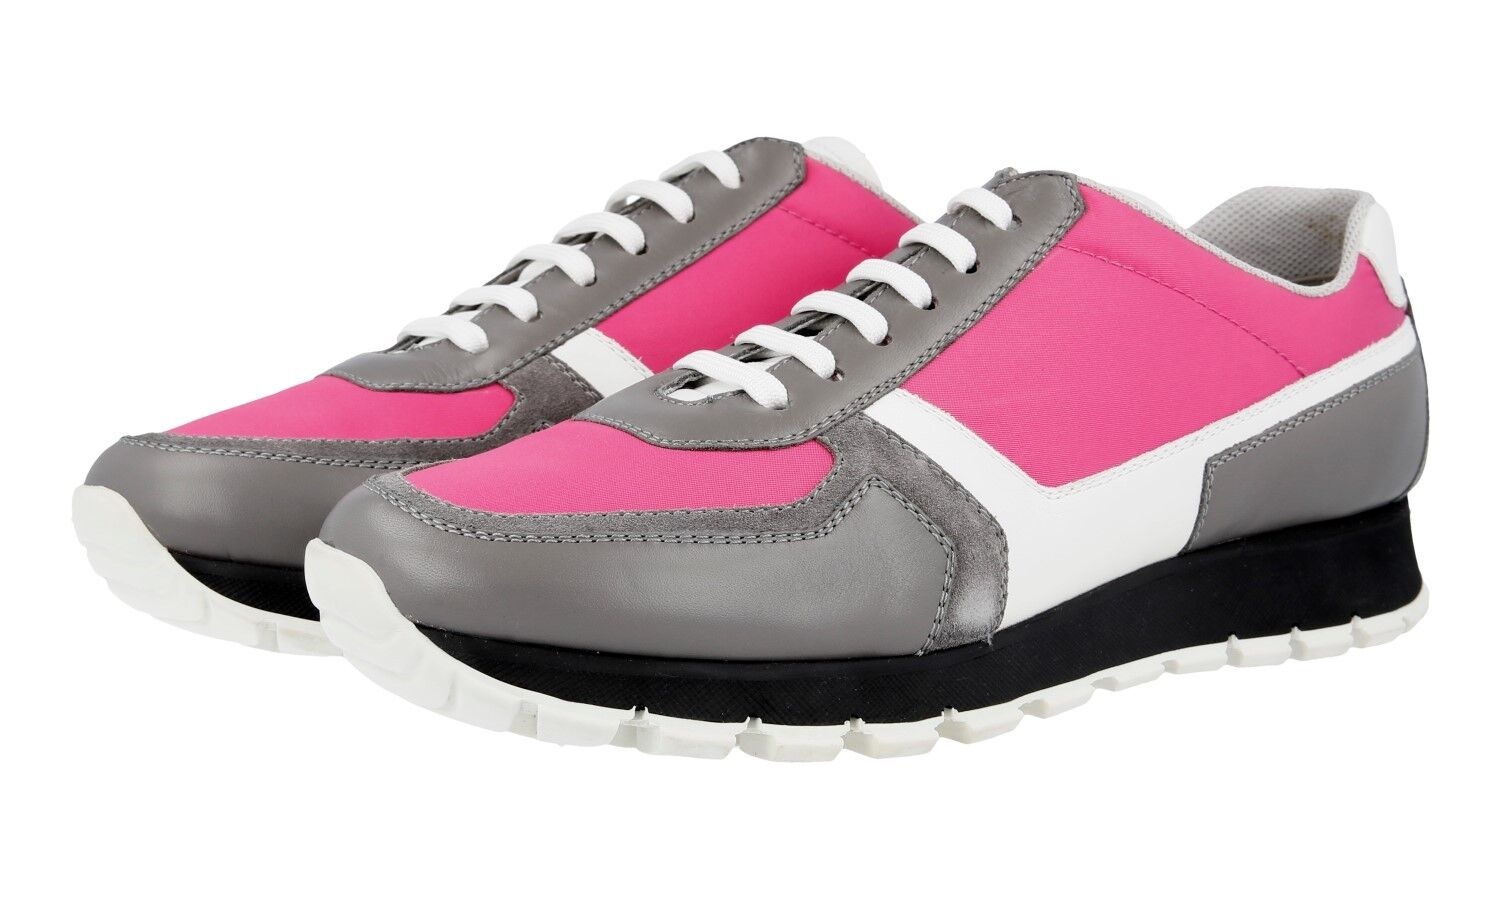 AUTH LUXURY PRADA SNEAKERS SHOES 3E6026 GREY PINK NEW US 11 EU 41 41,5 UK 8